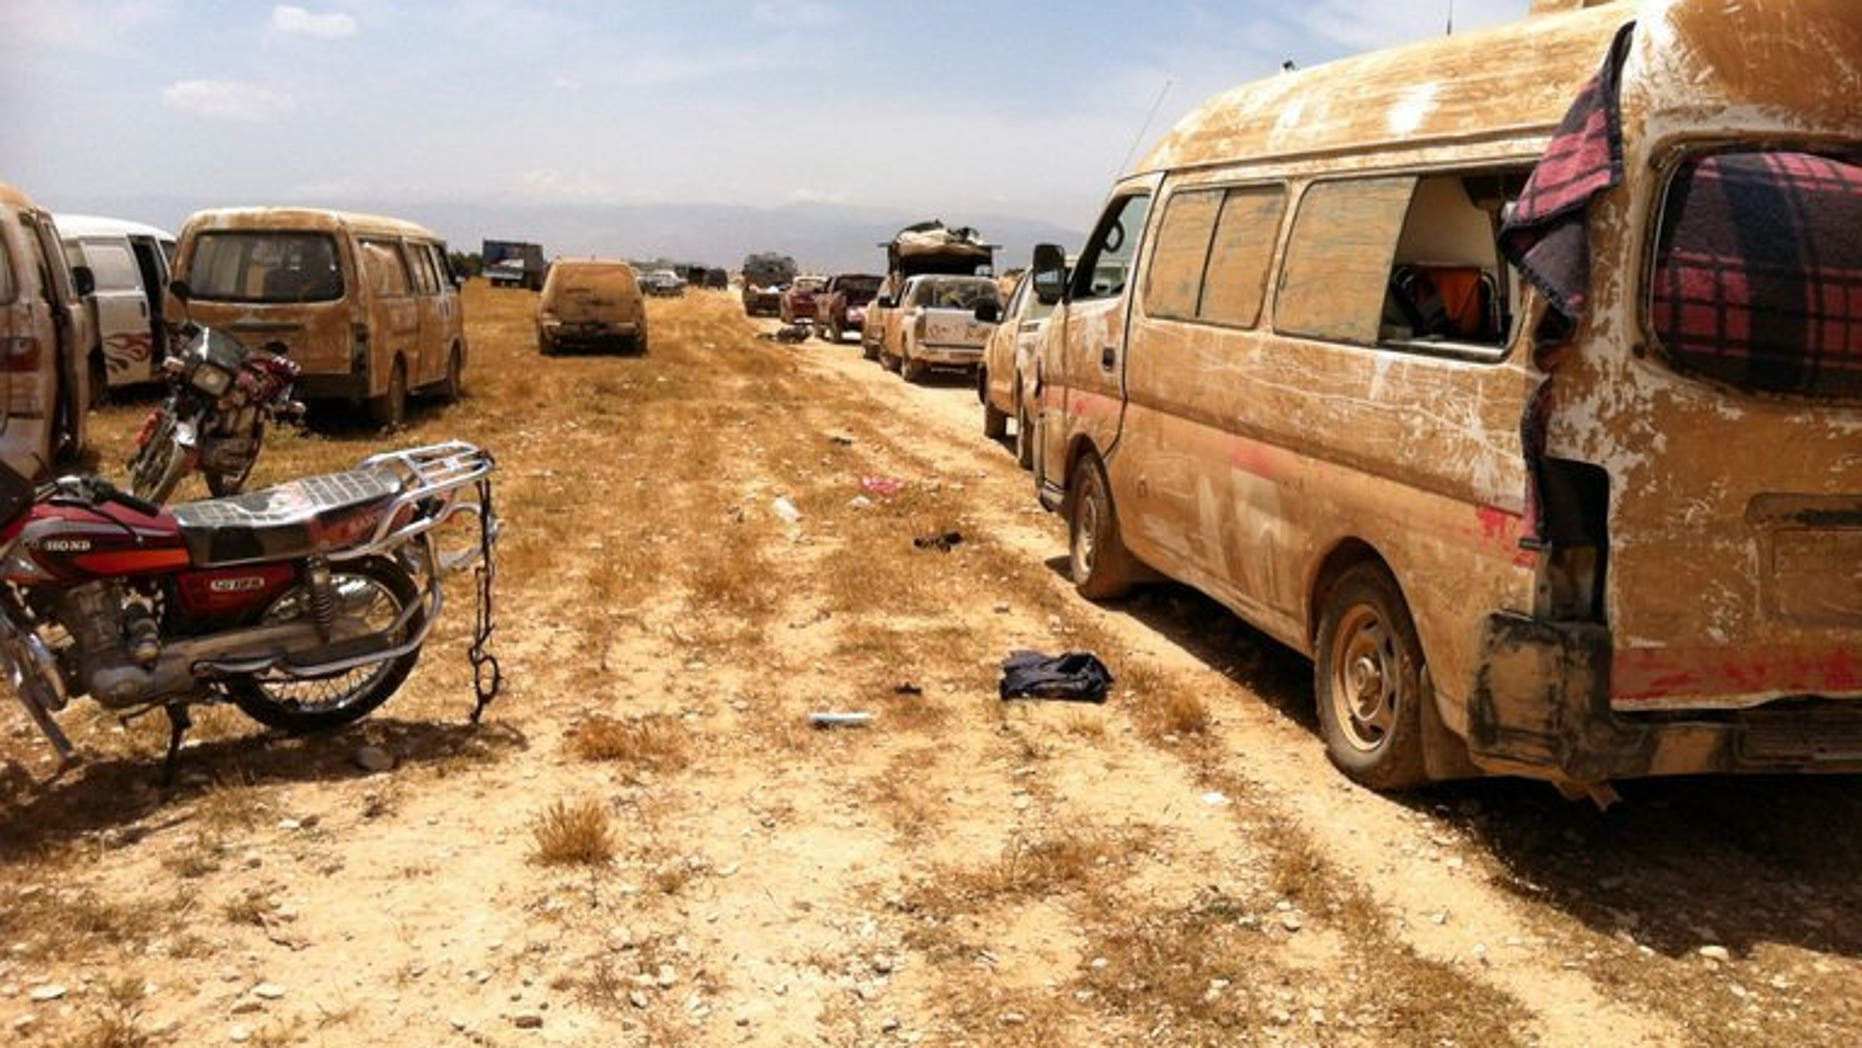 Cars left behind by rebels in Dabaa, north of Qusayr, in Syria's central Homs province on June 7, 2013. The CIA and US special operations forces have been training Syrian rebels for months, since long before President Barack Obama announced plans to arm the opposition, the Los Angeles Times reported Friday.